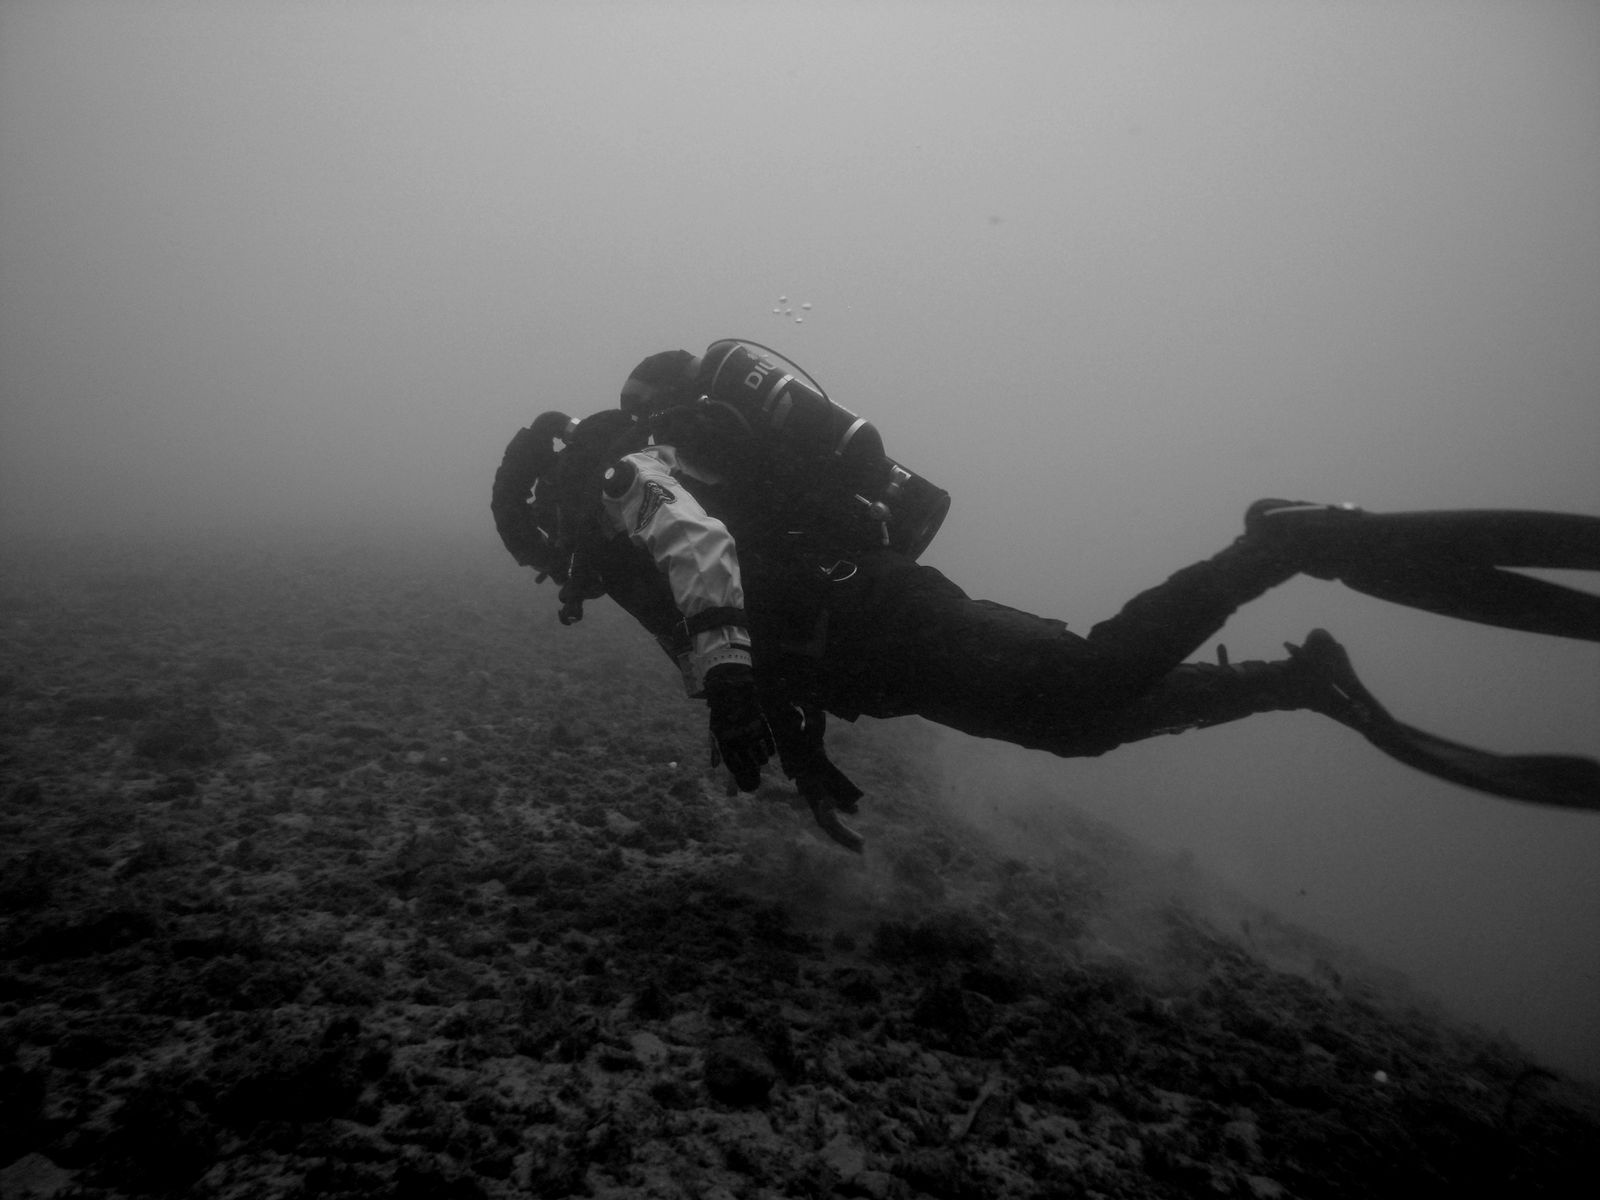 IMMERSIONE CON REBREATHER